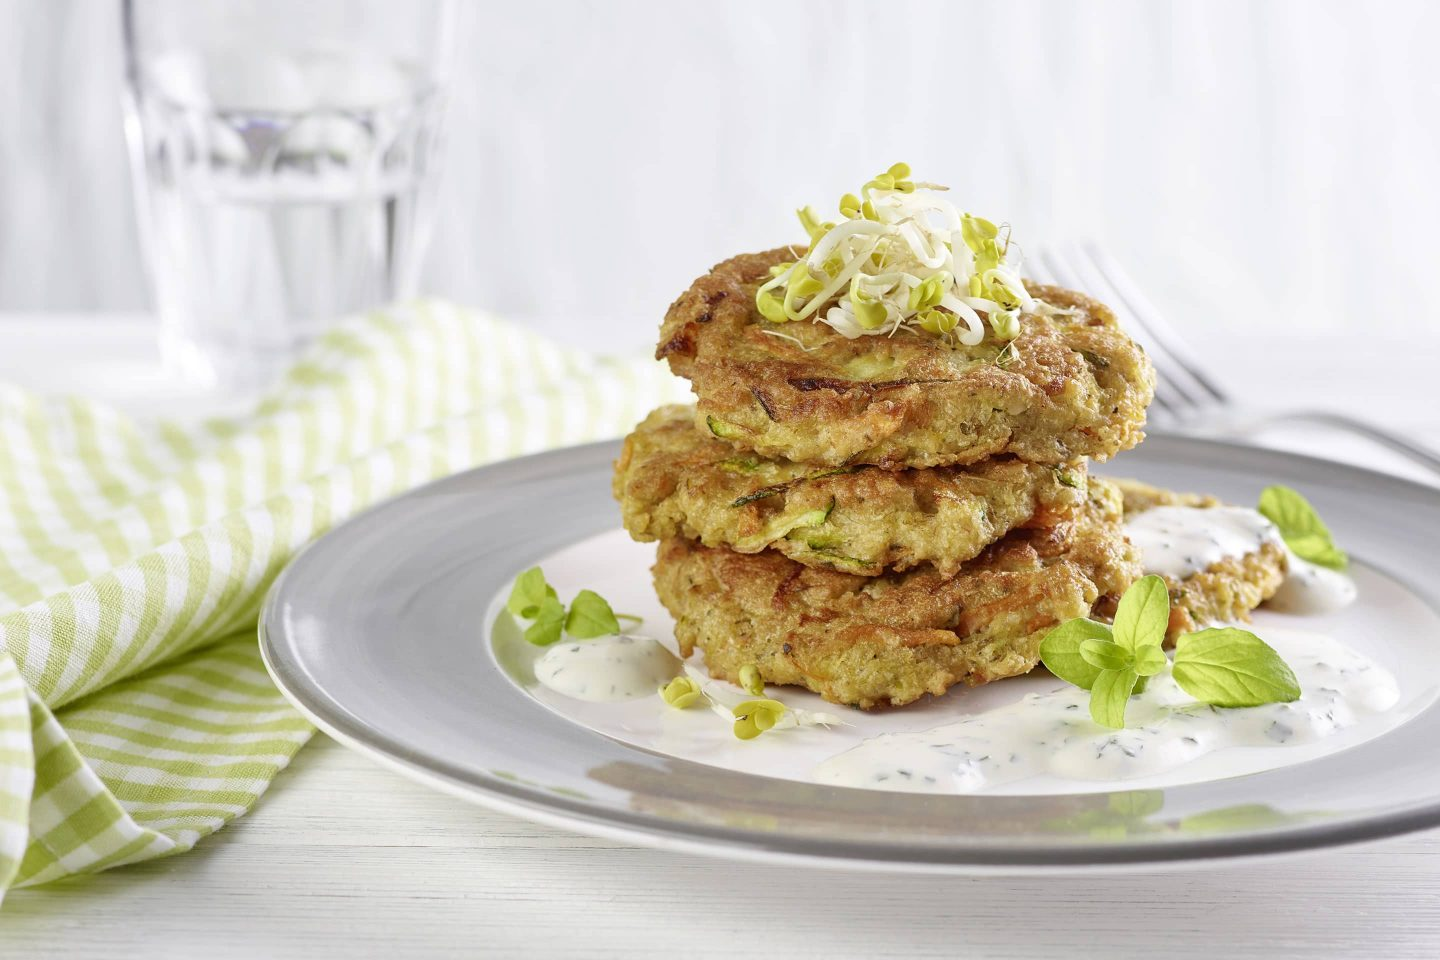 Carrot and zucchini patties with oatmeal and marjoram prepared on a plate with a gray rim and a green checkered napkin